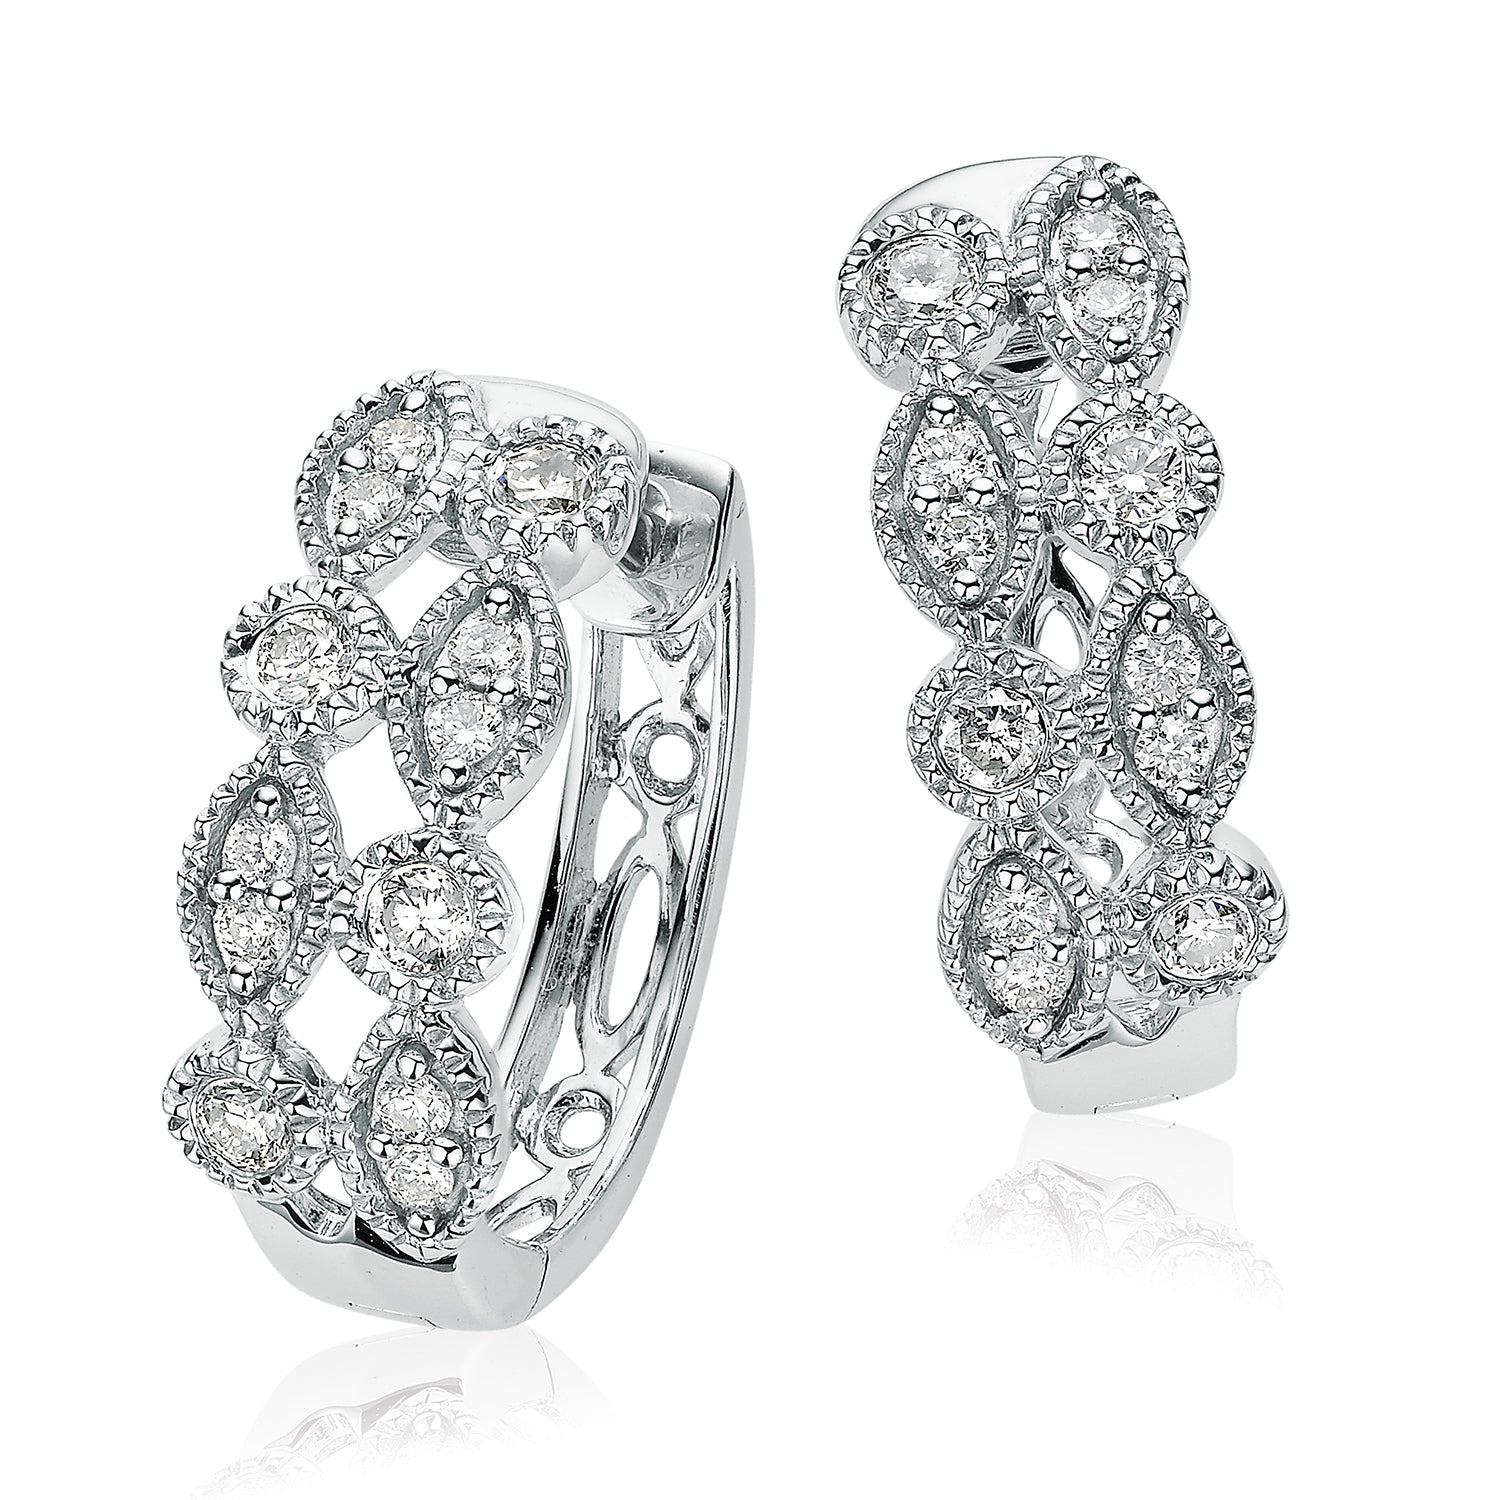 9ct White Gold Round Brilliant Cut with 0.30 CARAT tw of Diamonds Earrings